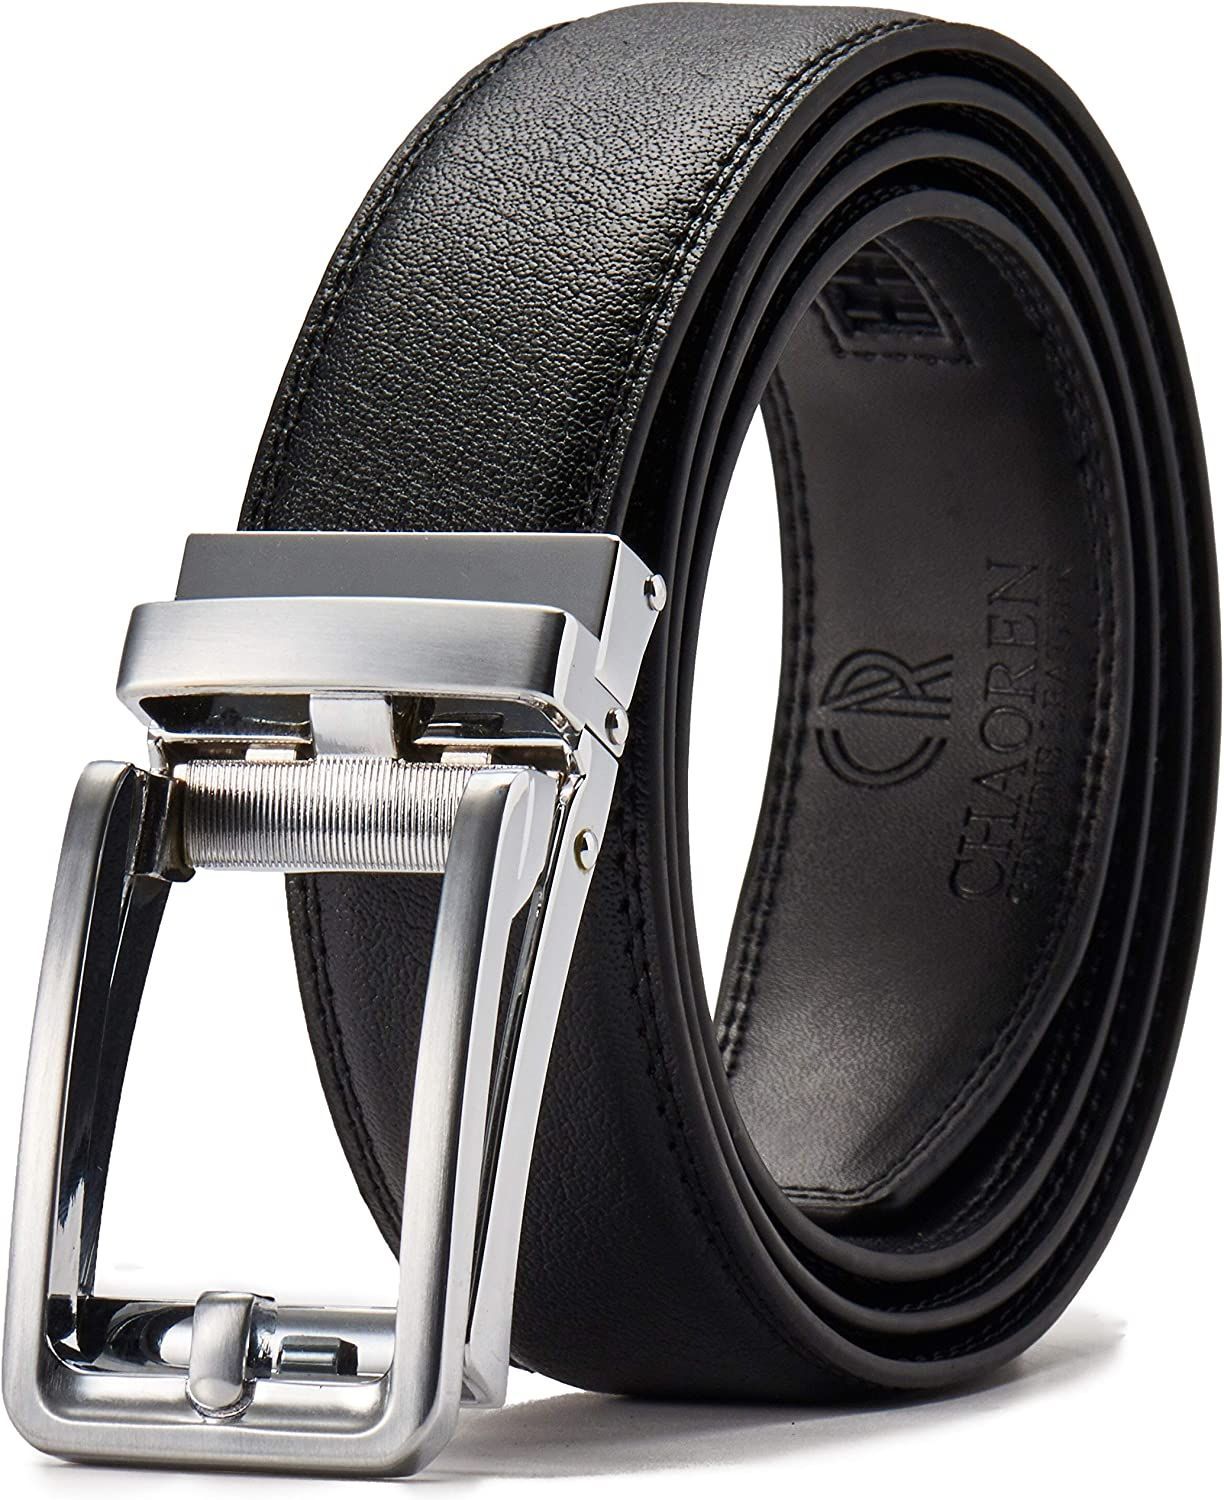 "Chaoren Click Ratchet Belt Dress with Sliding Buckle 1 3/8"" - Men's Belt Adjustable Trim to Exact Fit"